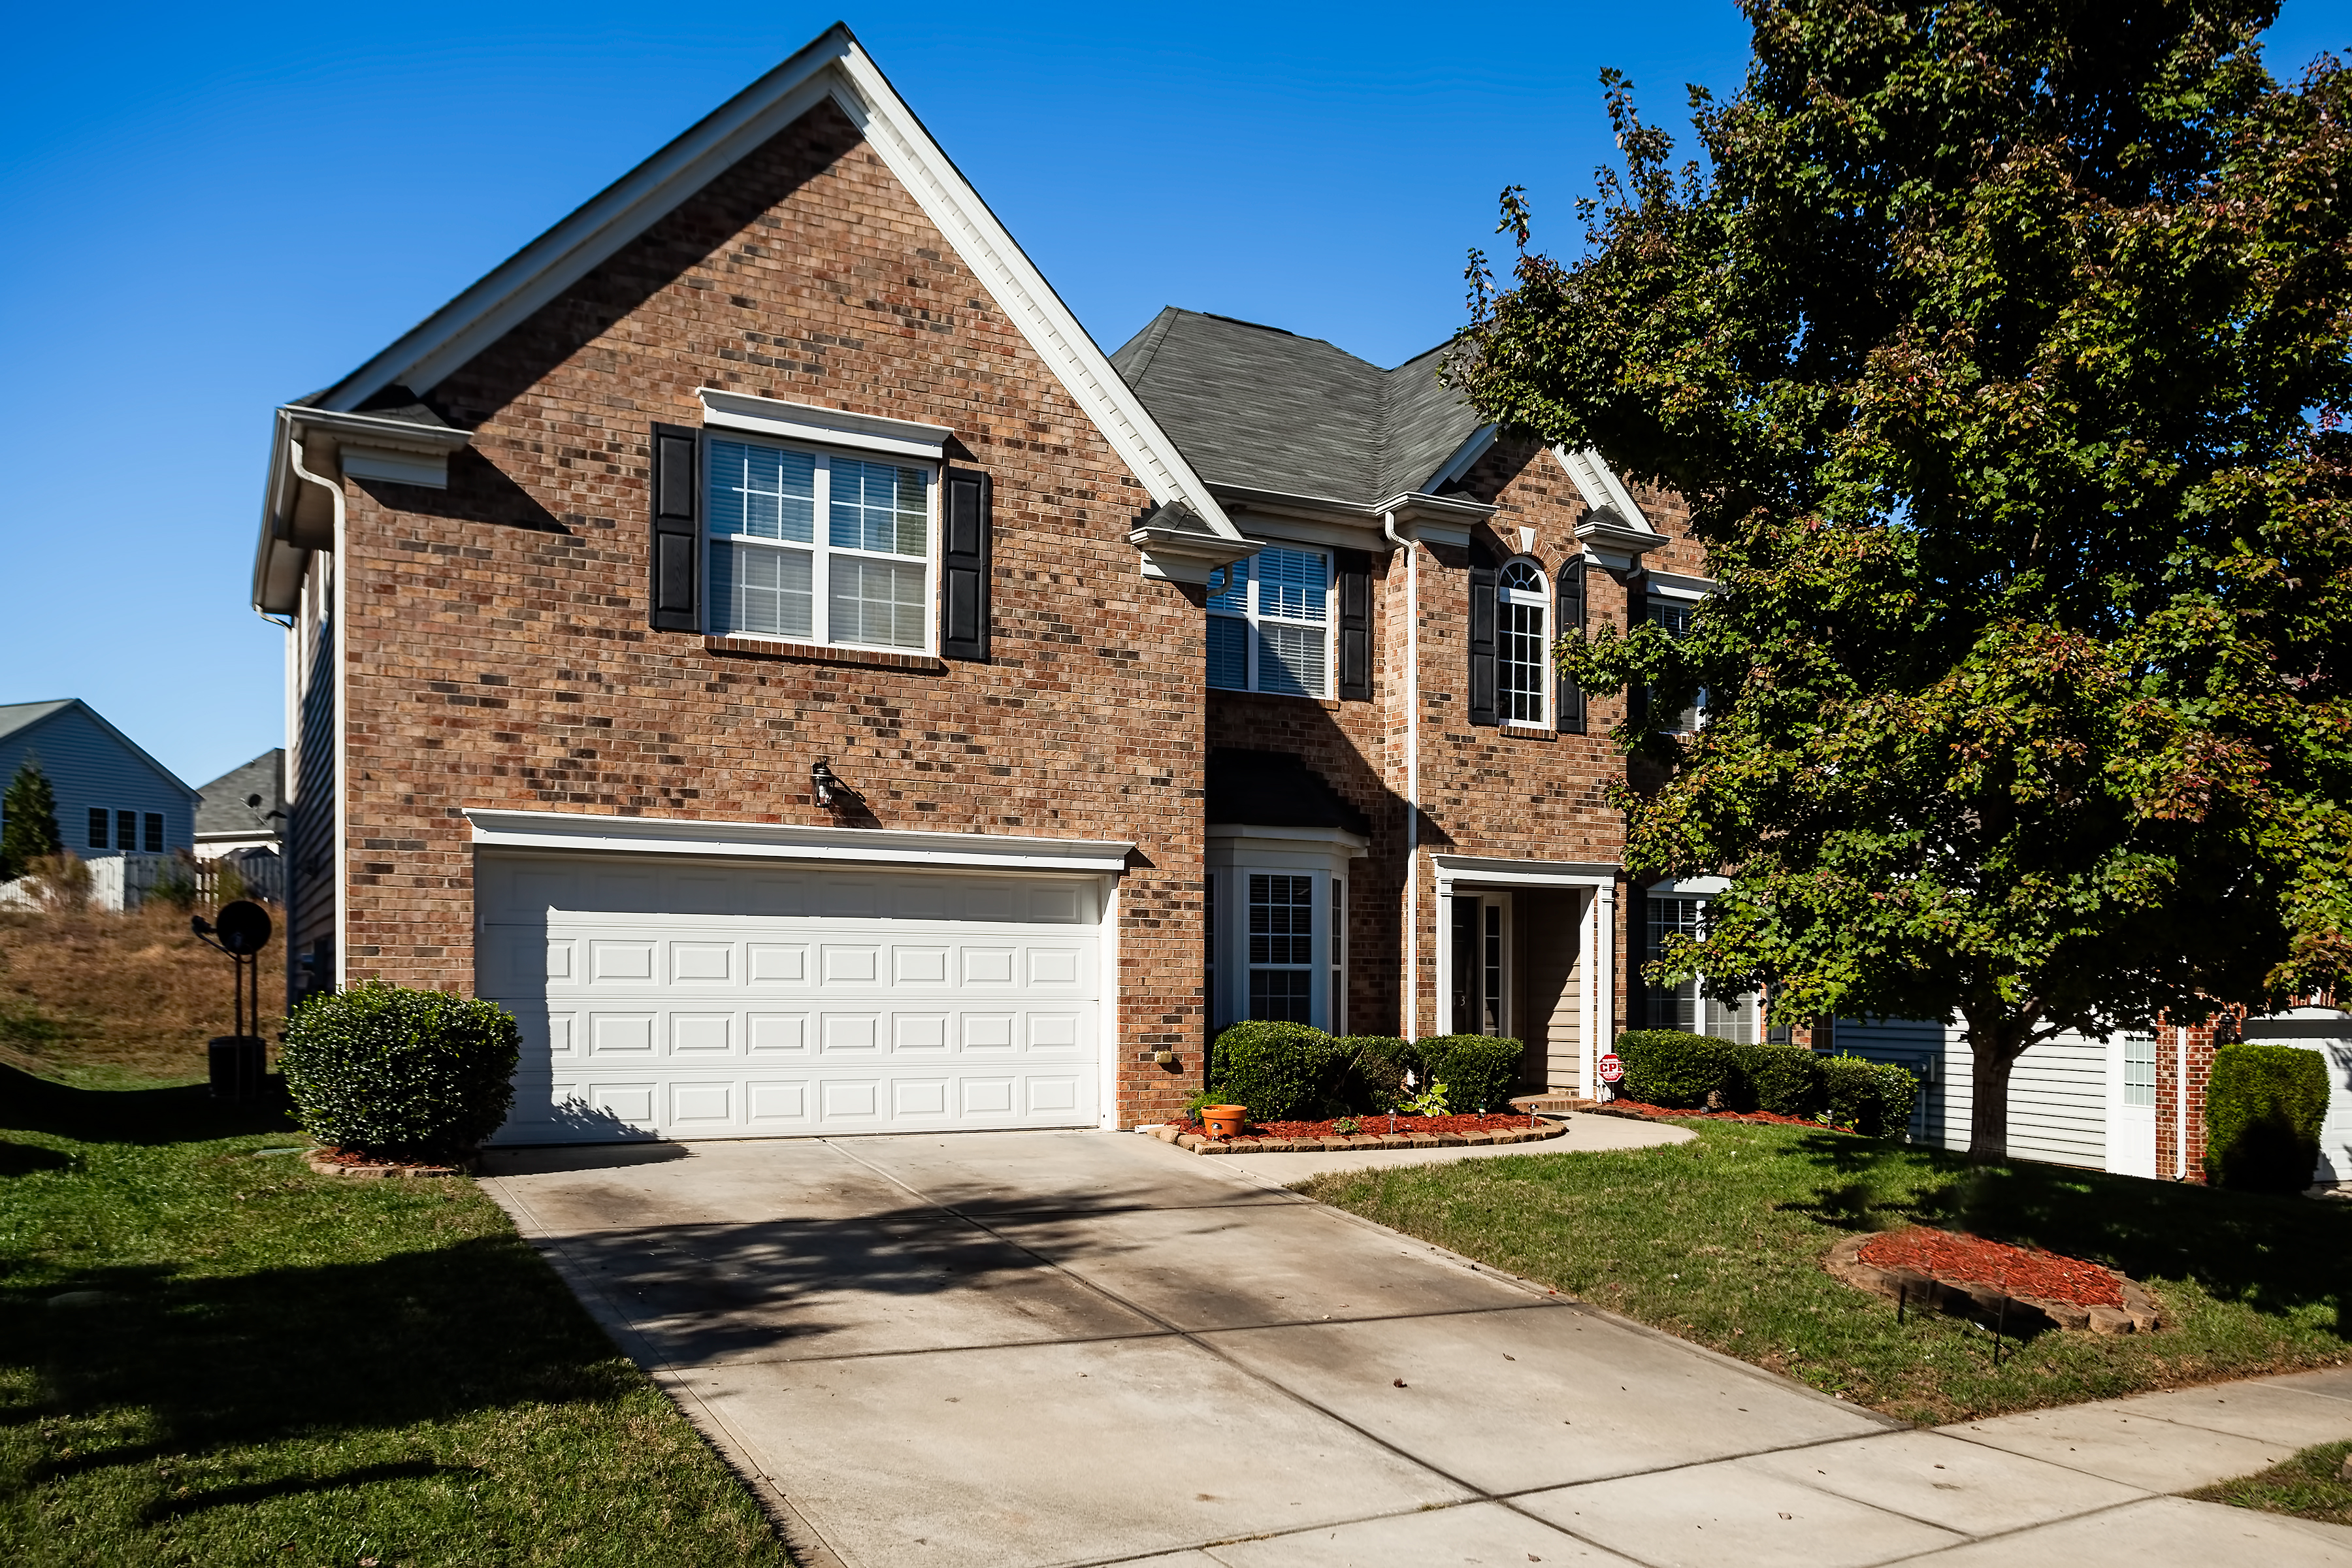 Just listed by don anthony realty 5 bedroom 3 bath home - 5 bedroom houses for sale in charlotte nc ...